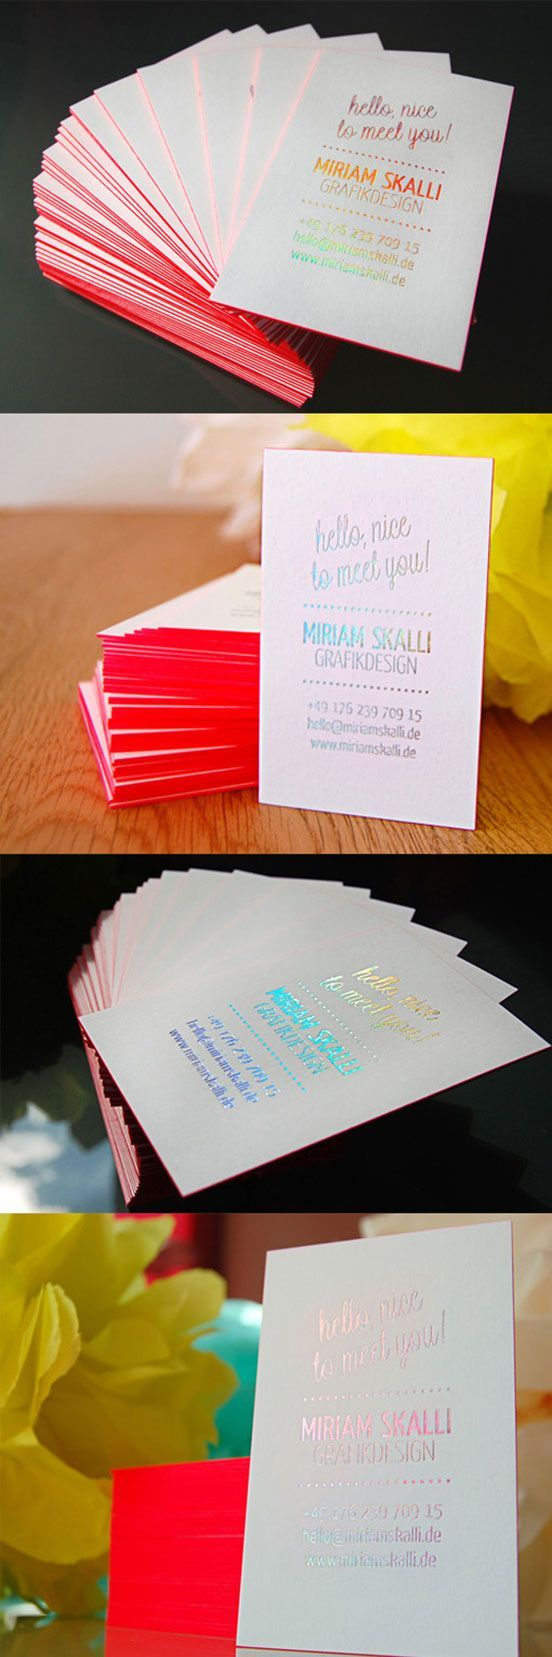 34 best business card ideas images on pinterest black black and iridescent foil business cards business cards the design inspiration magicingreecefo Image collections